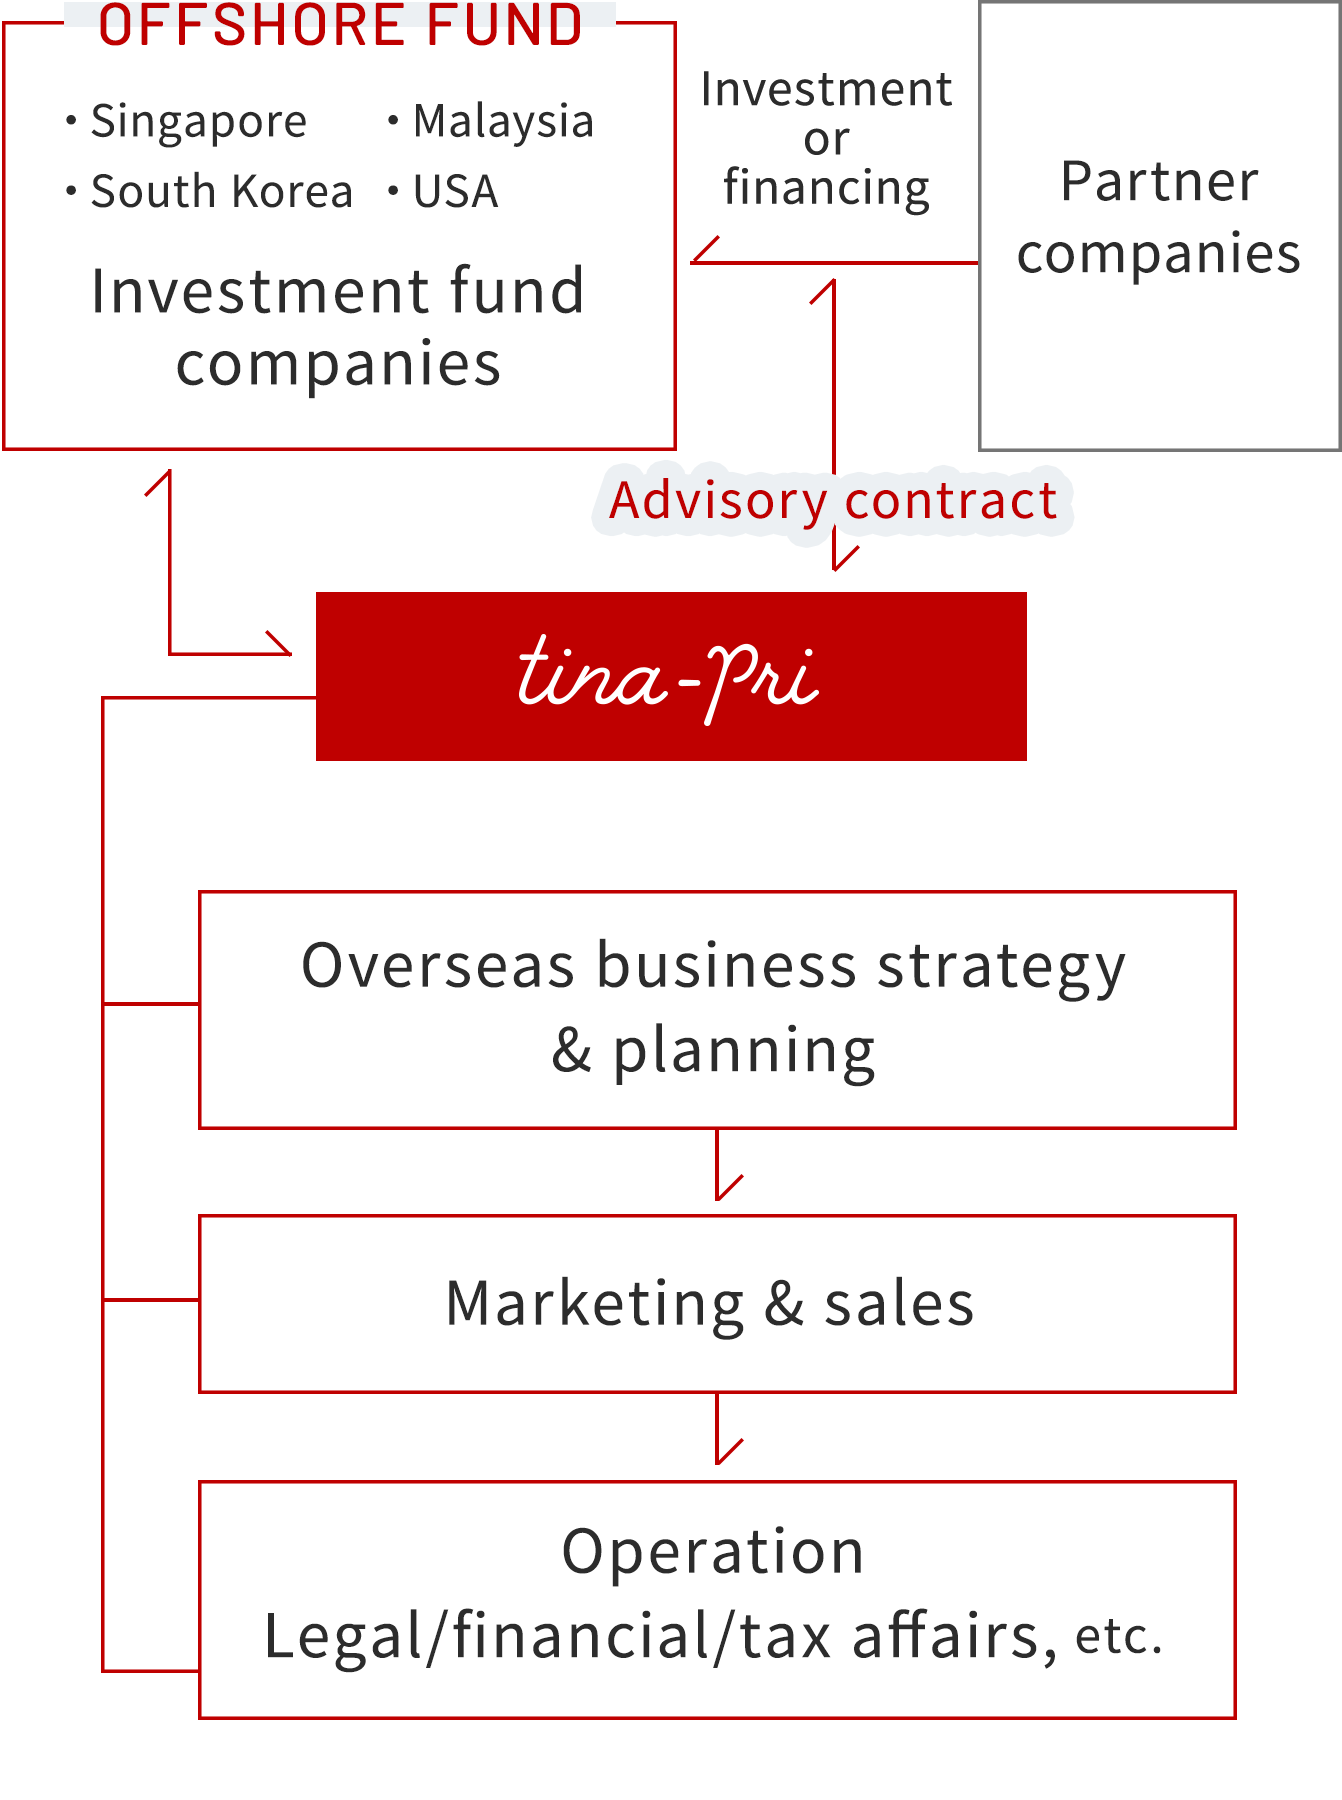 Image of business flow